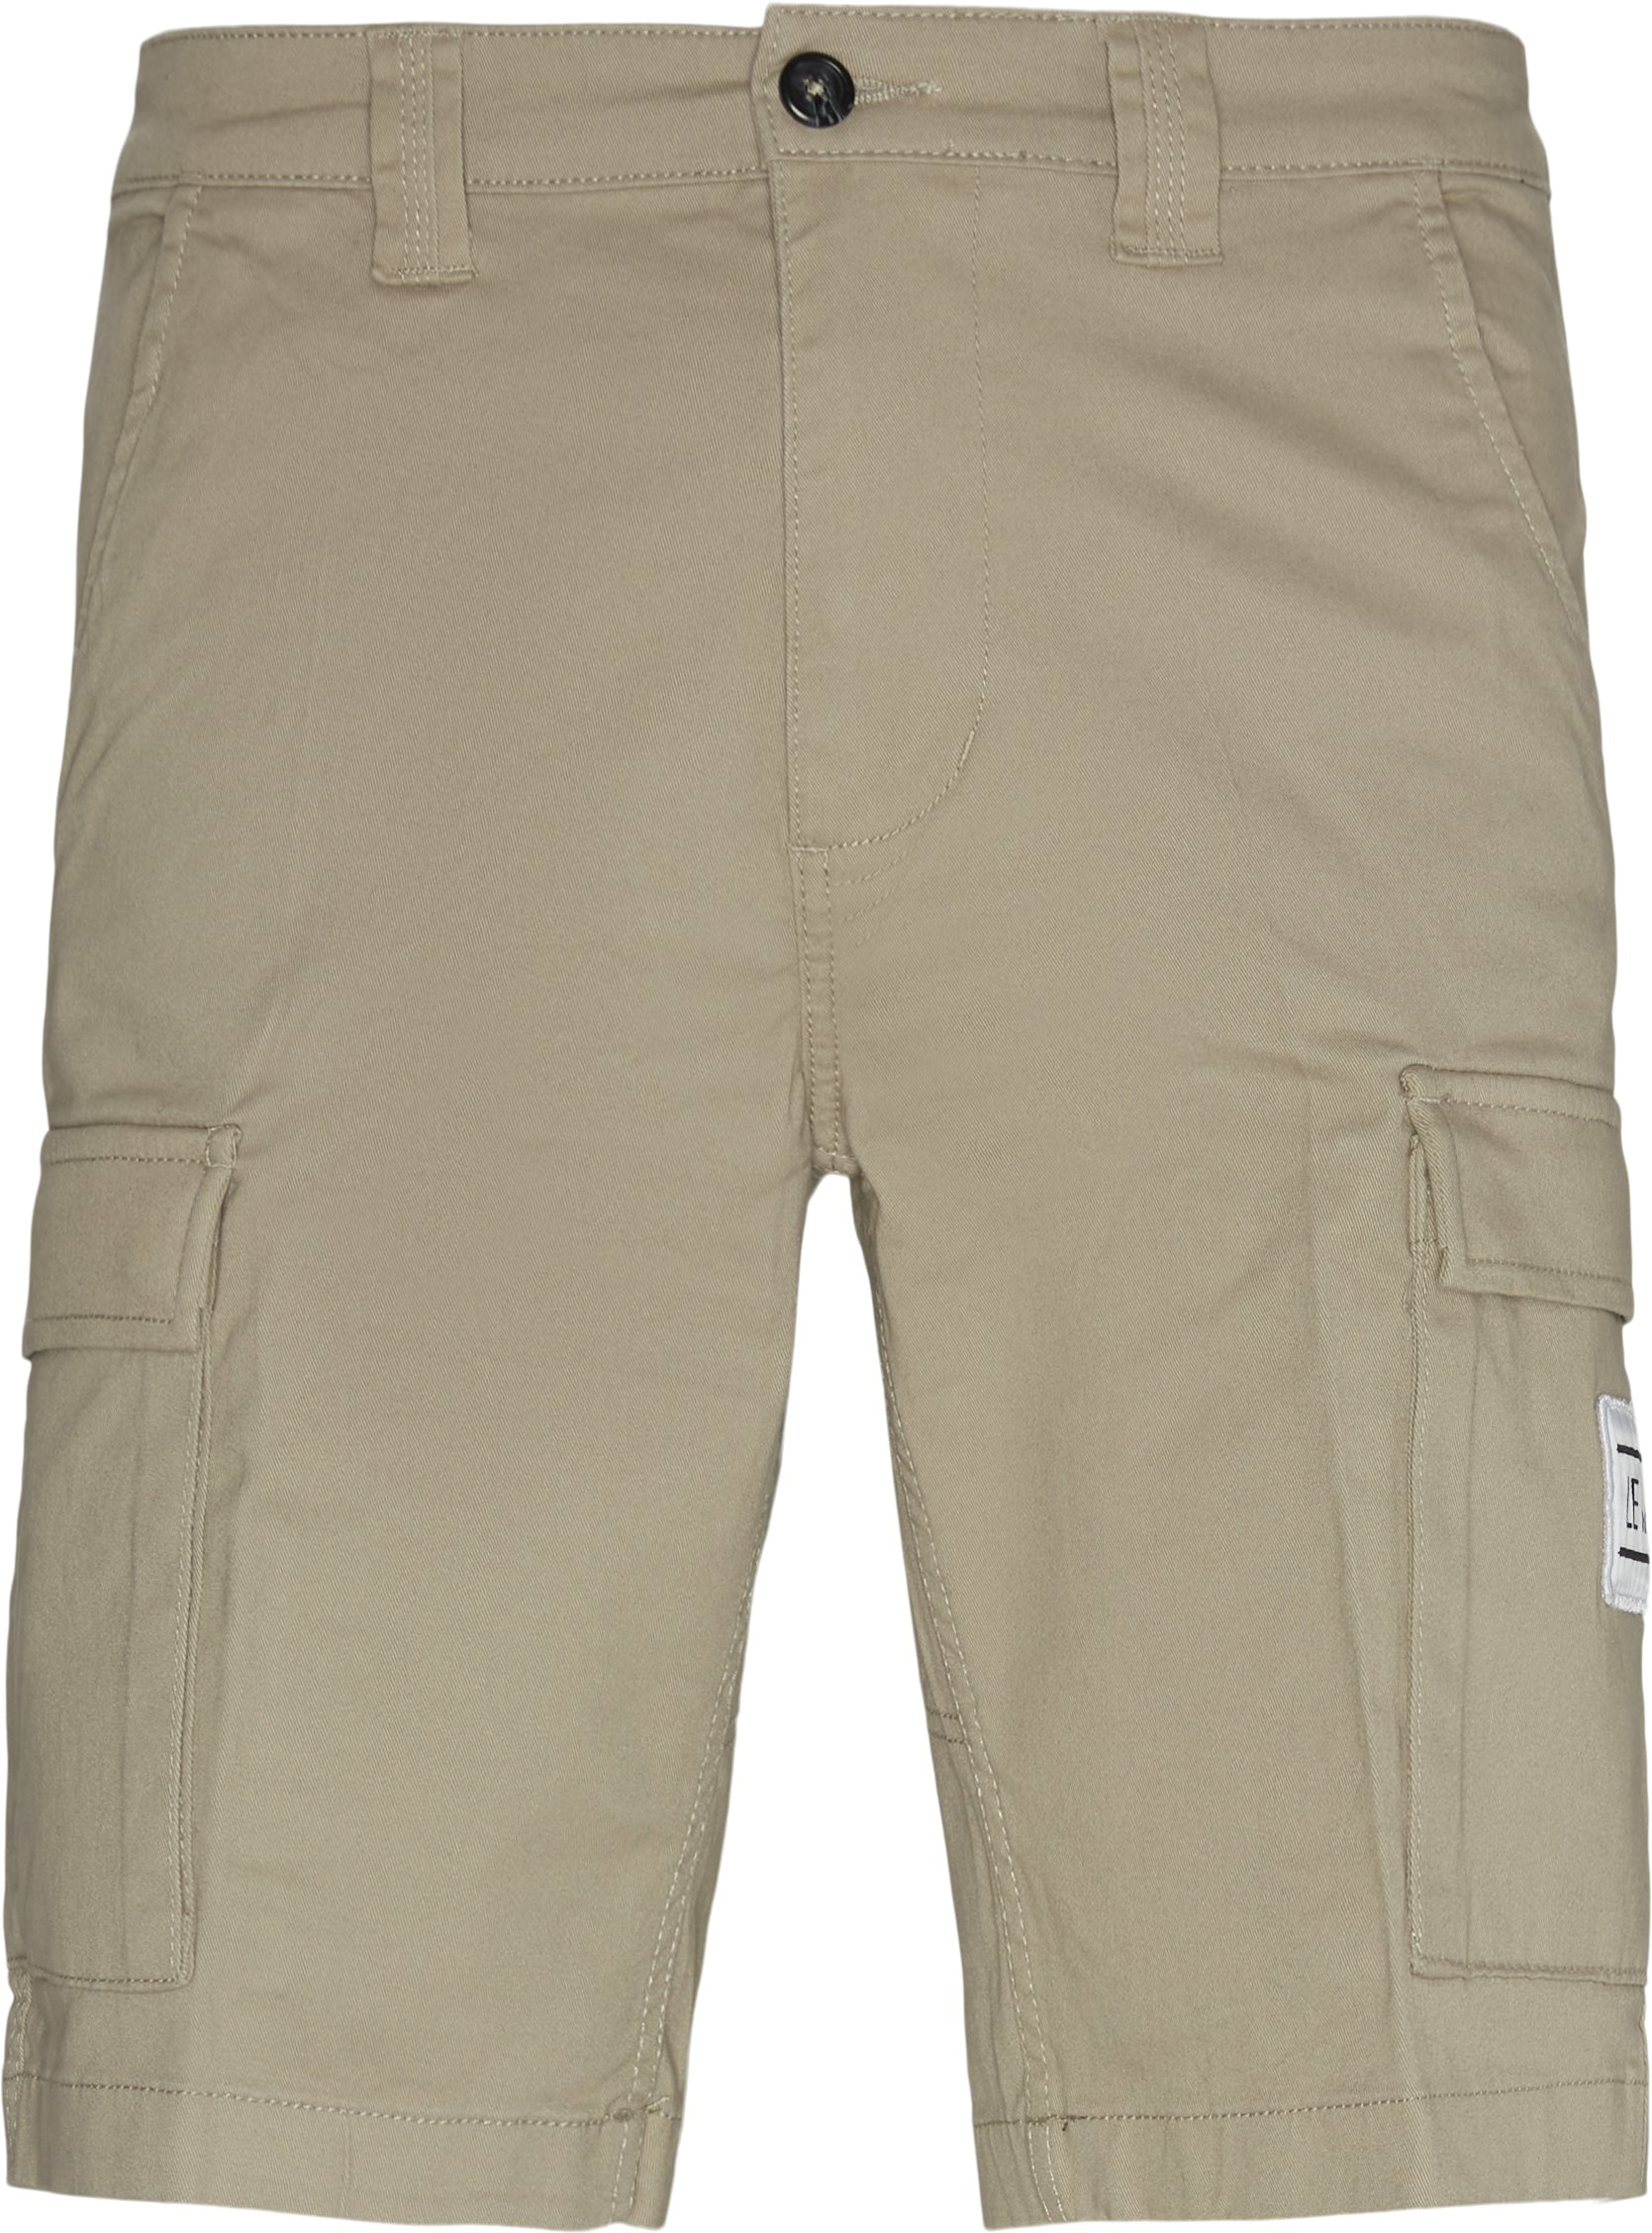 Shorts - Loose fit - Sand